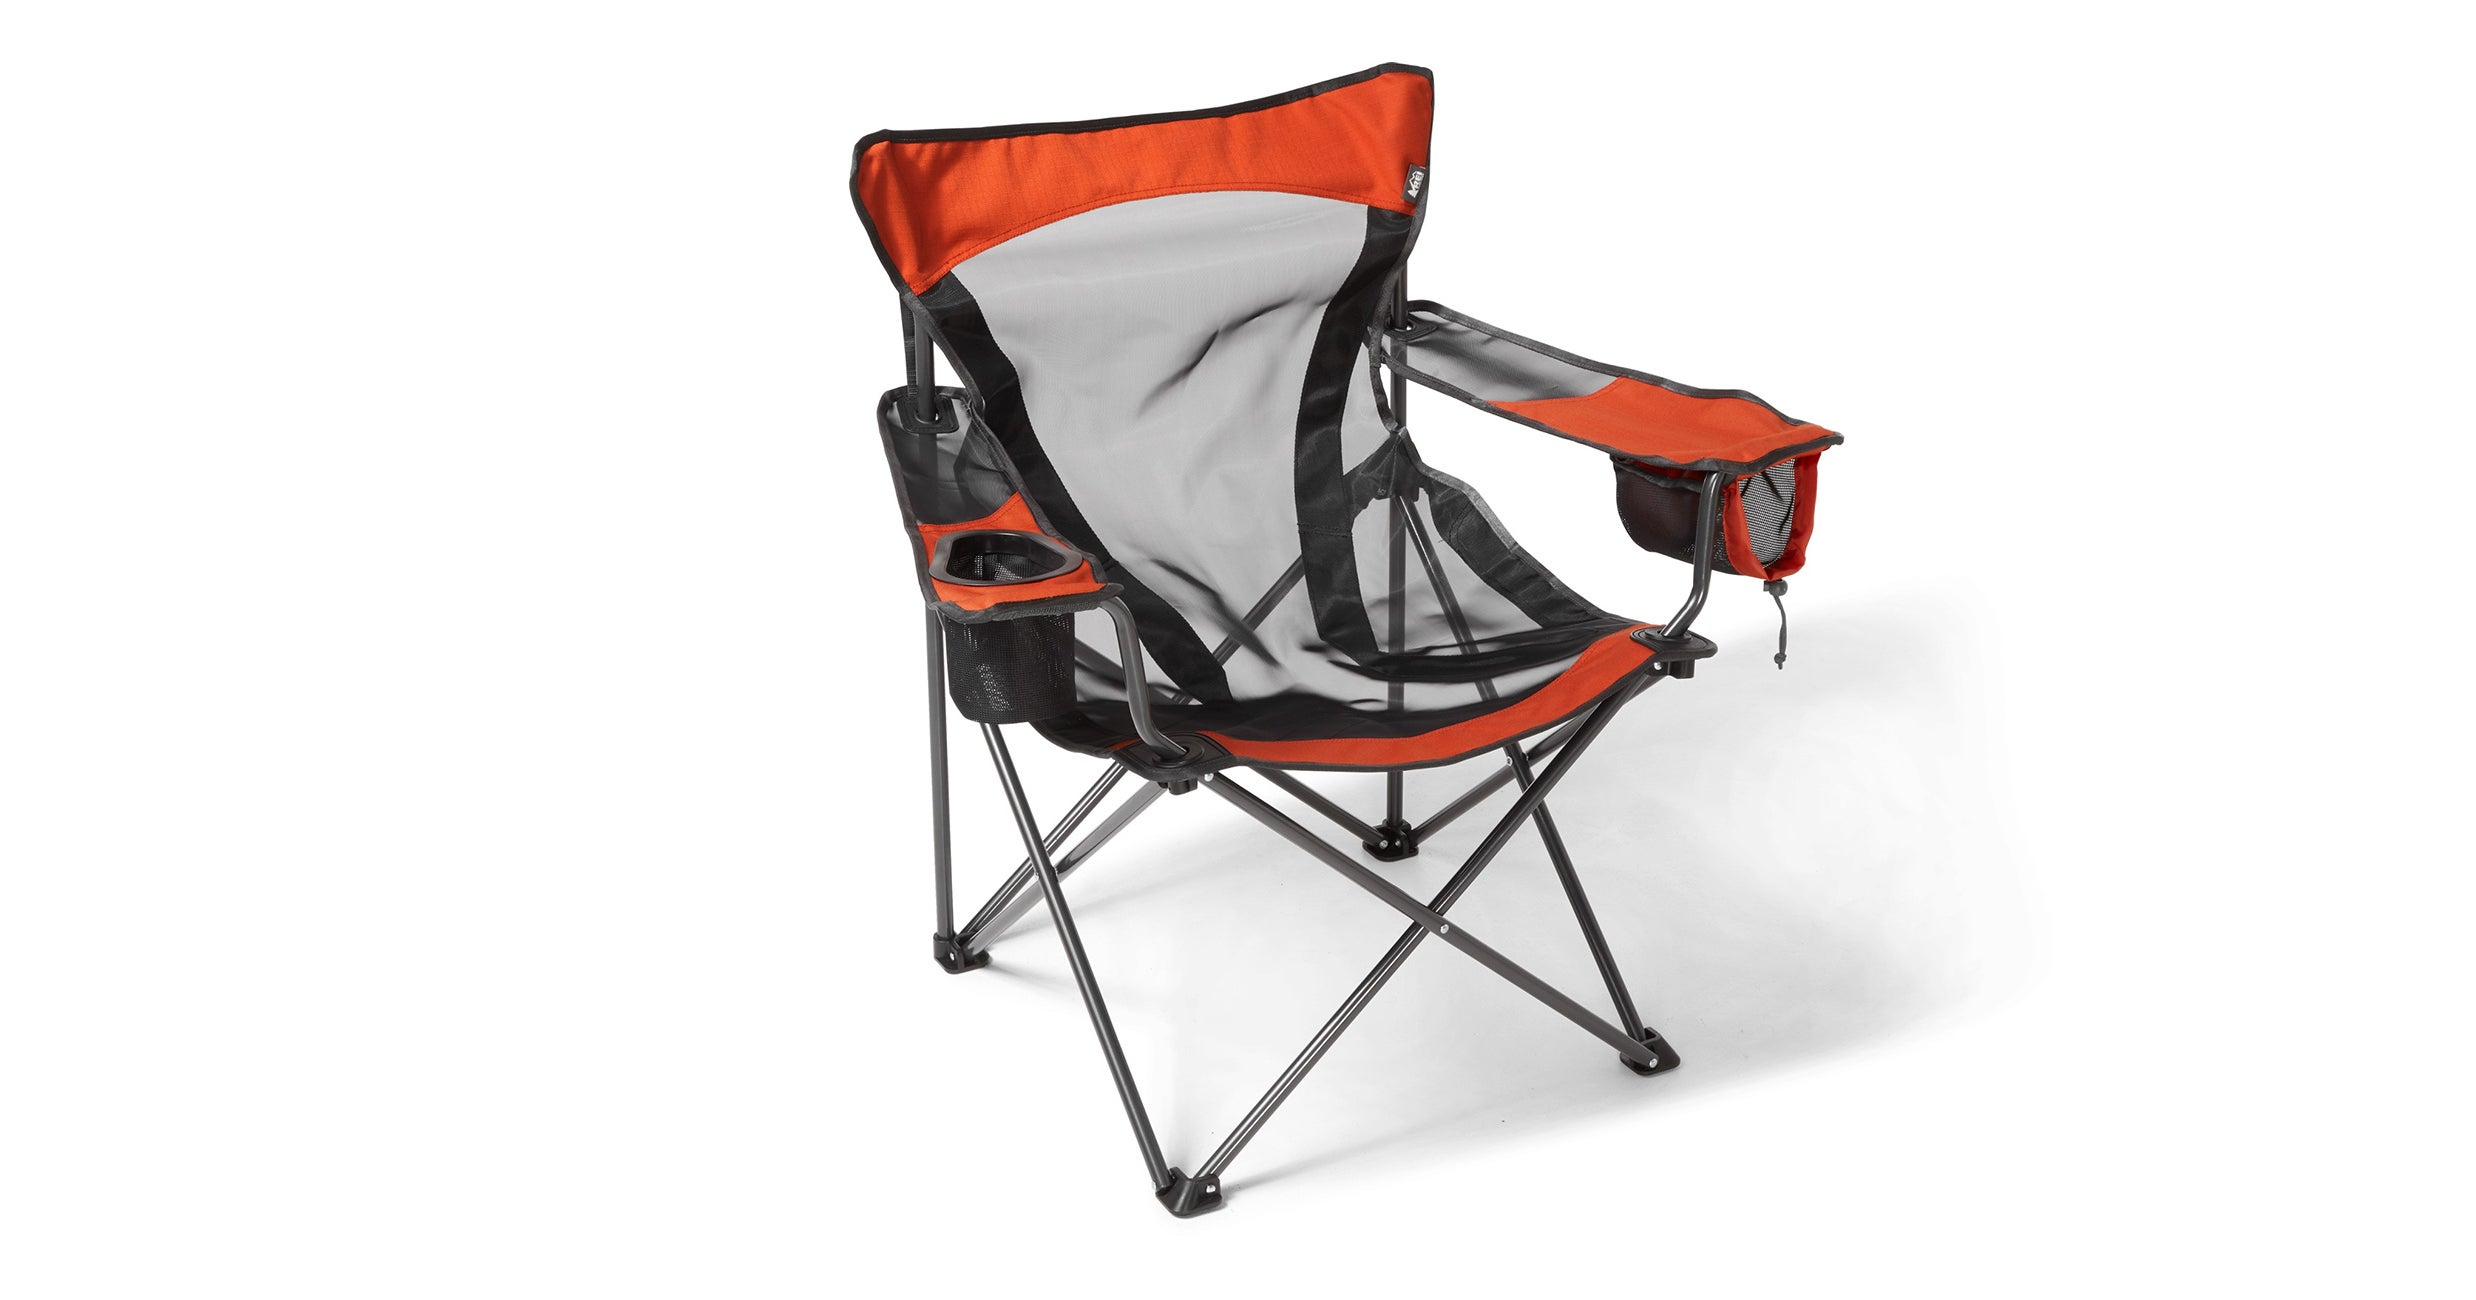 10 Best Camping Chairs For Every Level Of Comfort